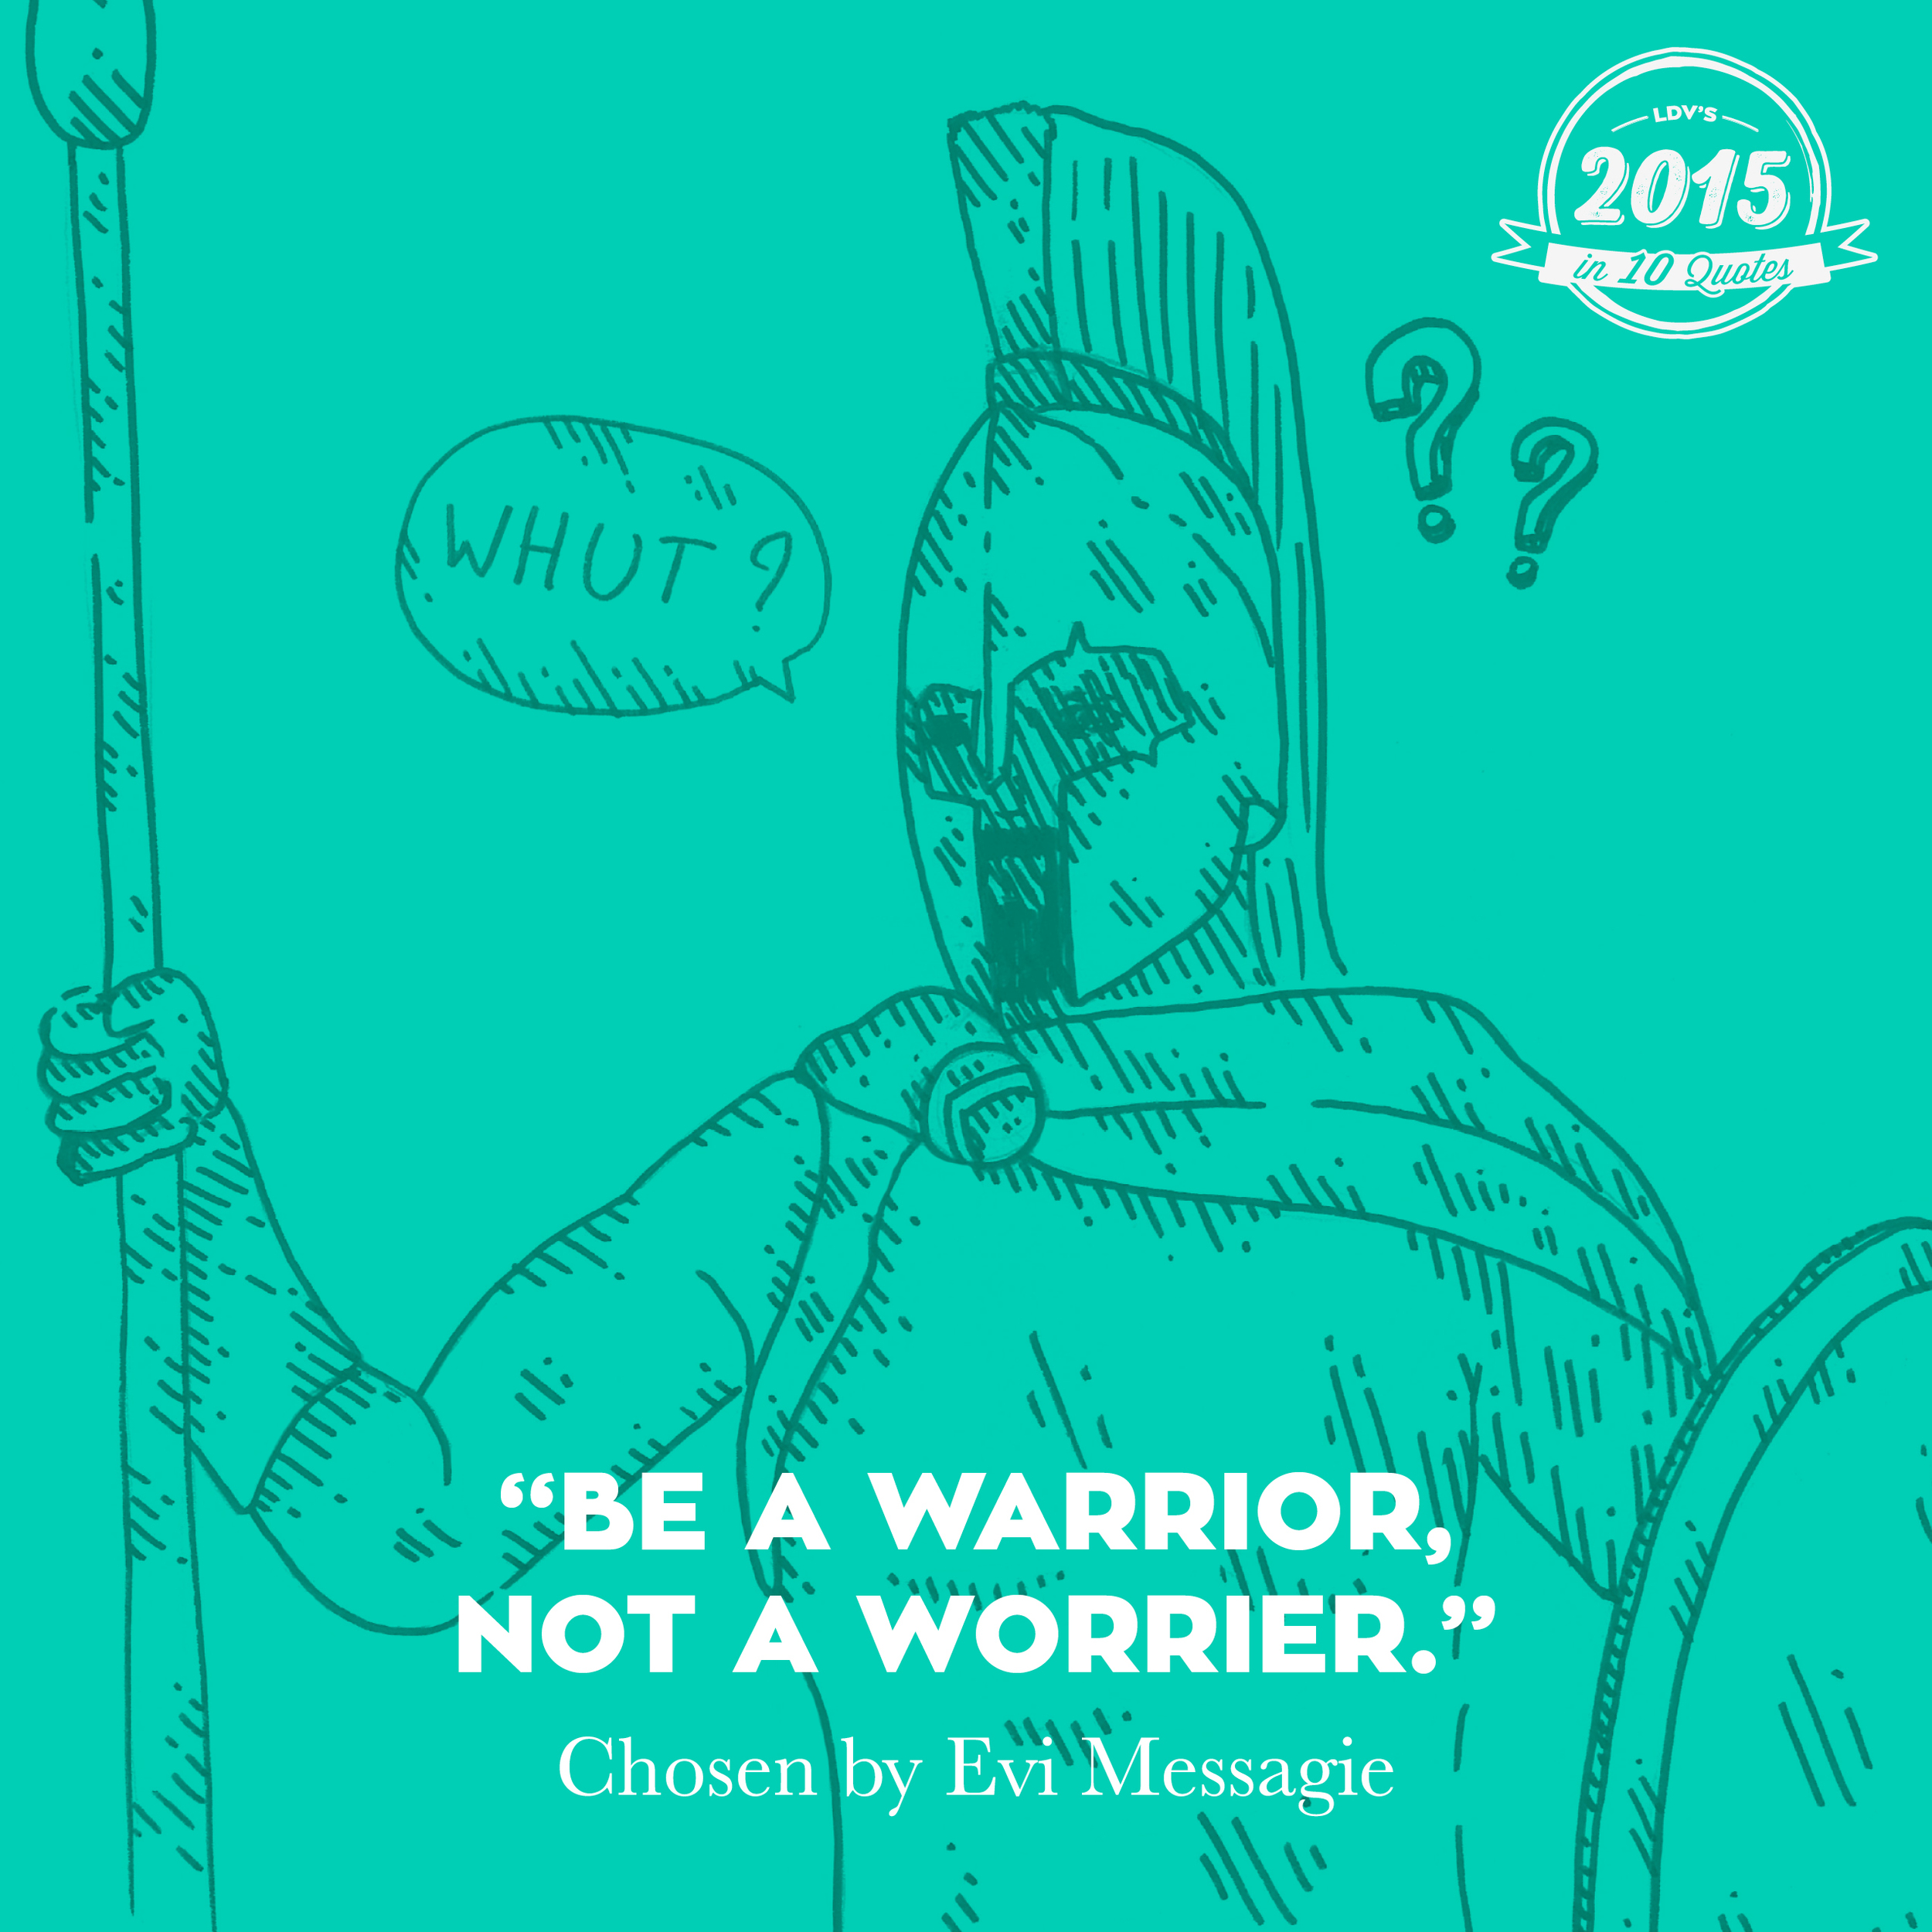 """""""Be a warrior, not a worrier."""" - Evi Messagie  If there's one quote which sums up the past year for me, it's this one. Worrying about things leads nowhere. Taking action is what you need to do. #2015in10quotes #thisisLDV"""